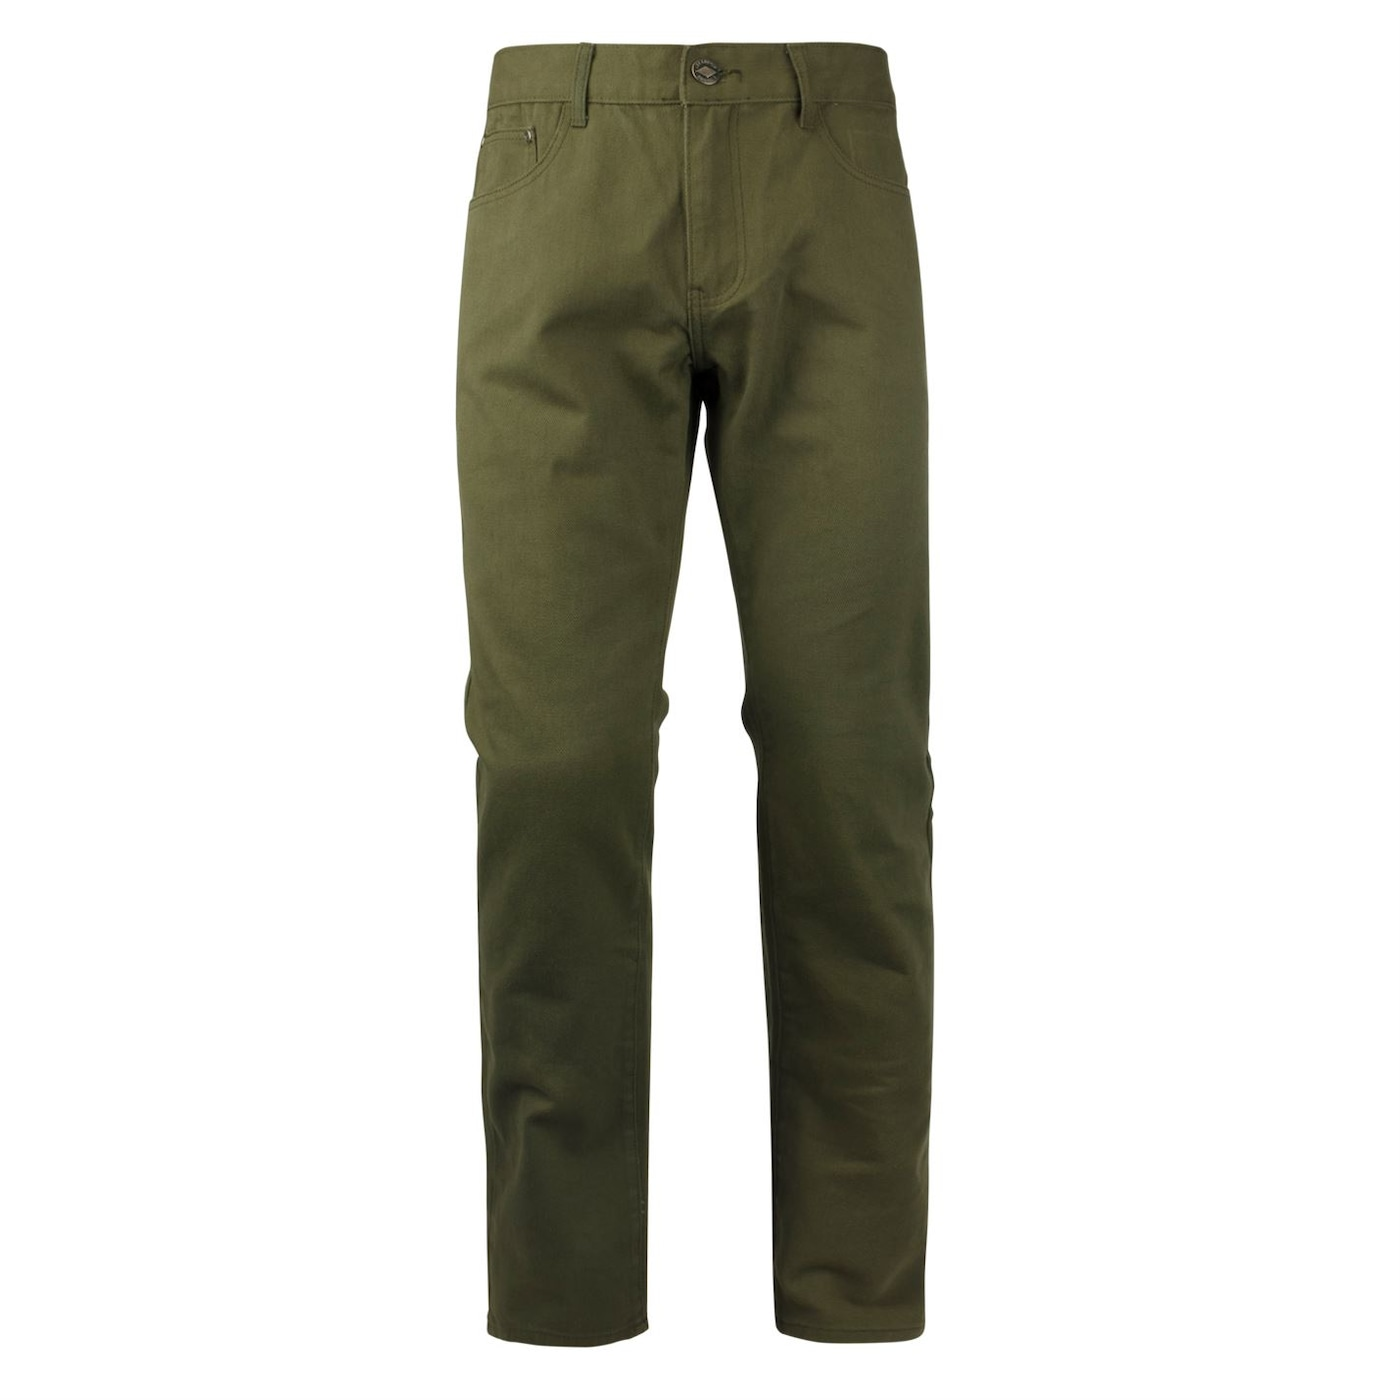 Lee Cooper Casual Chinos pánské